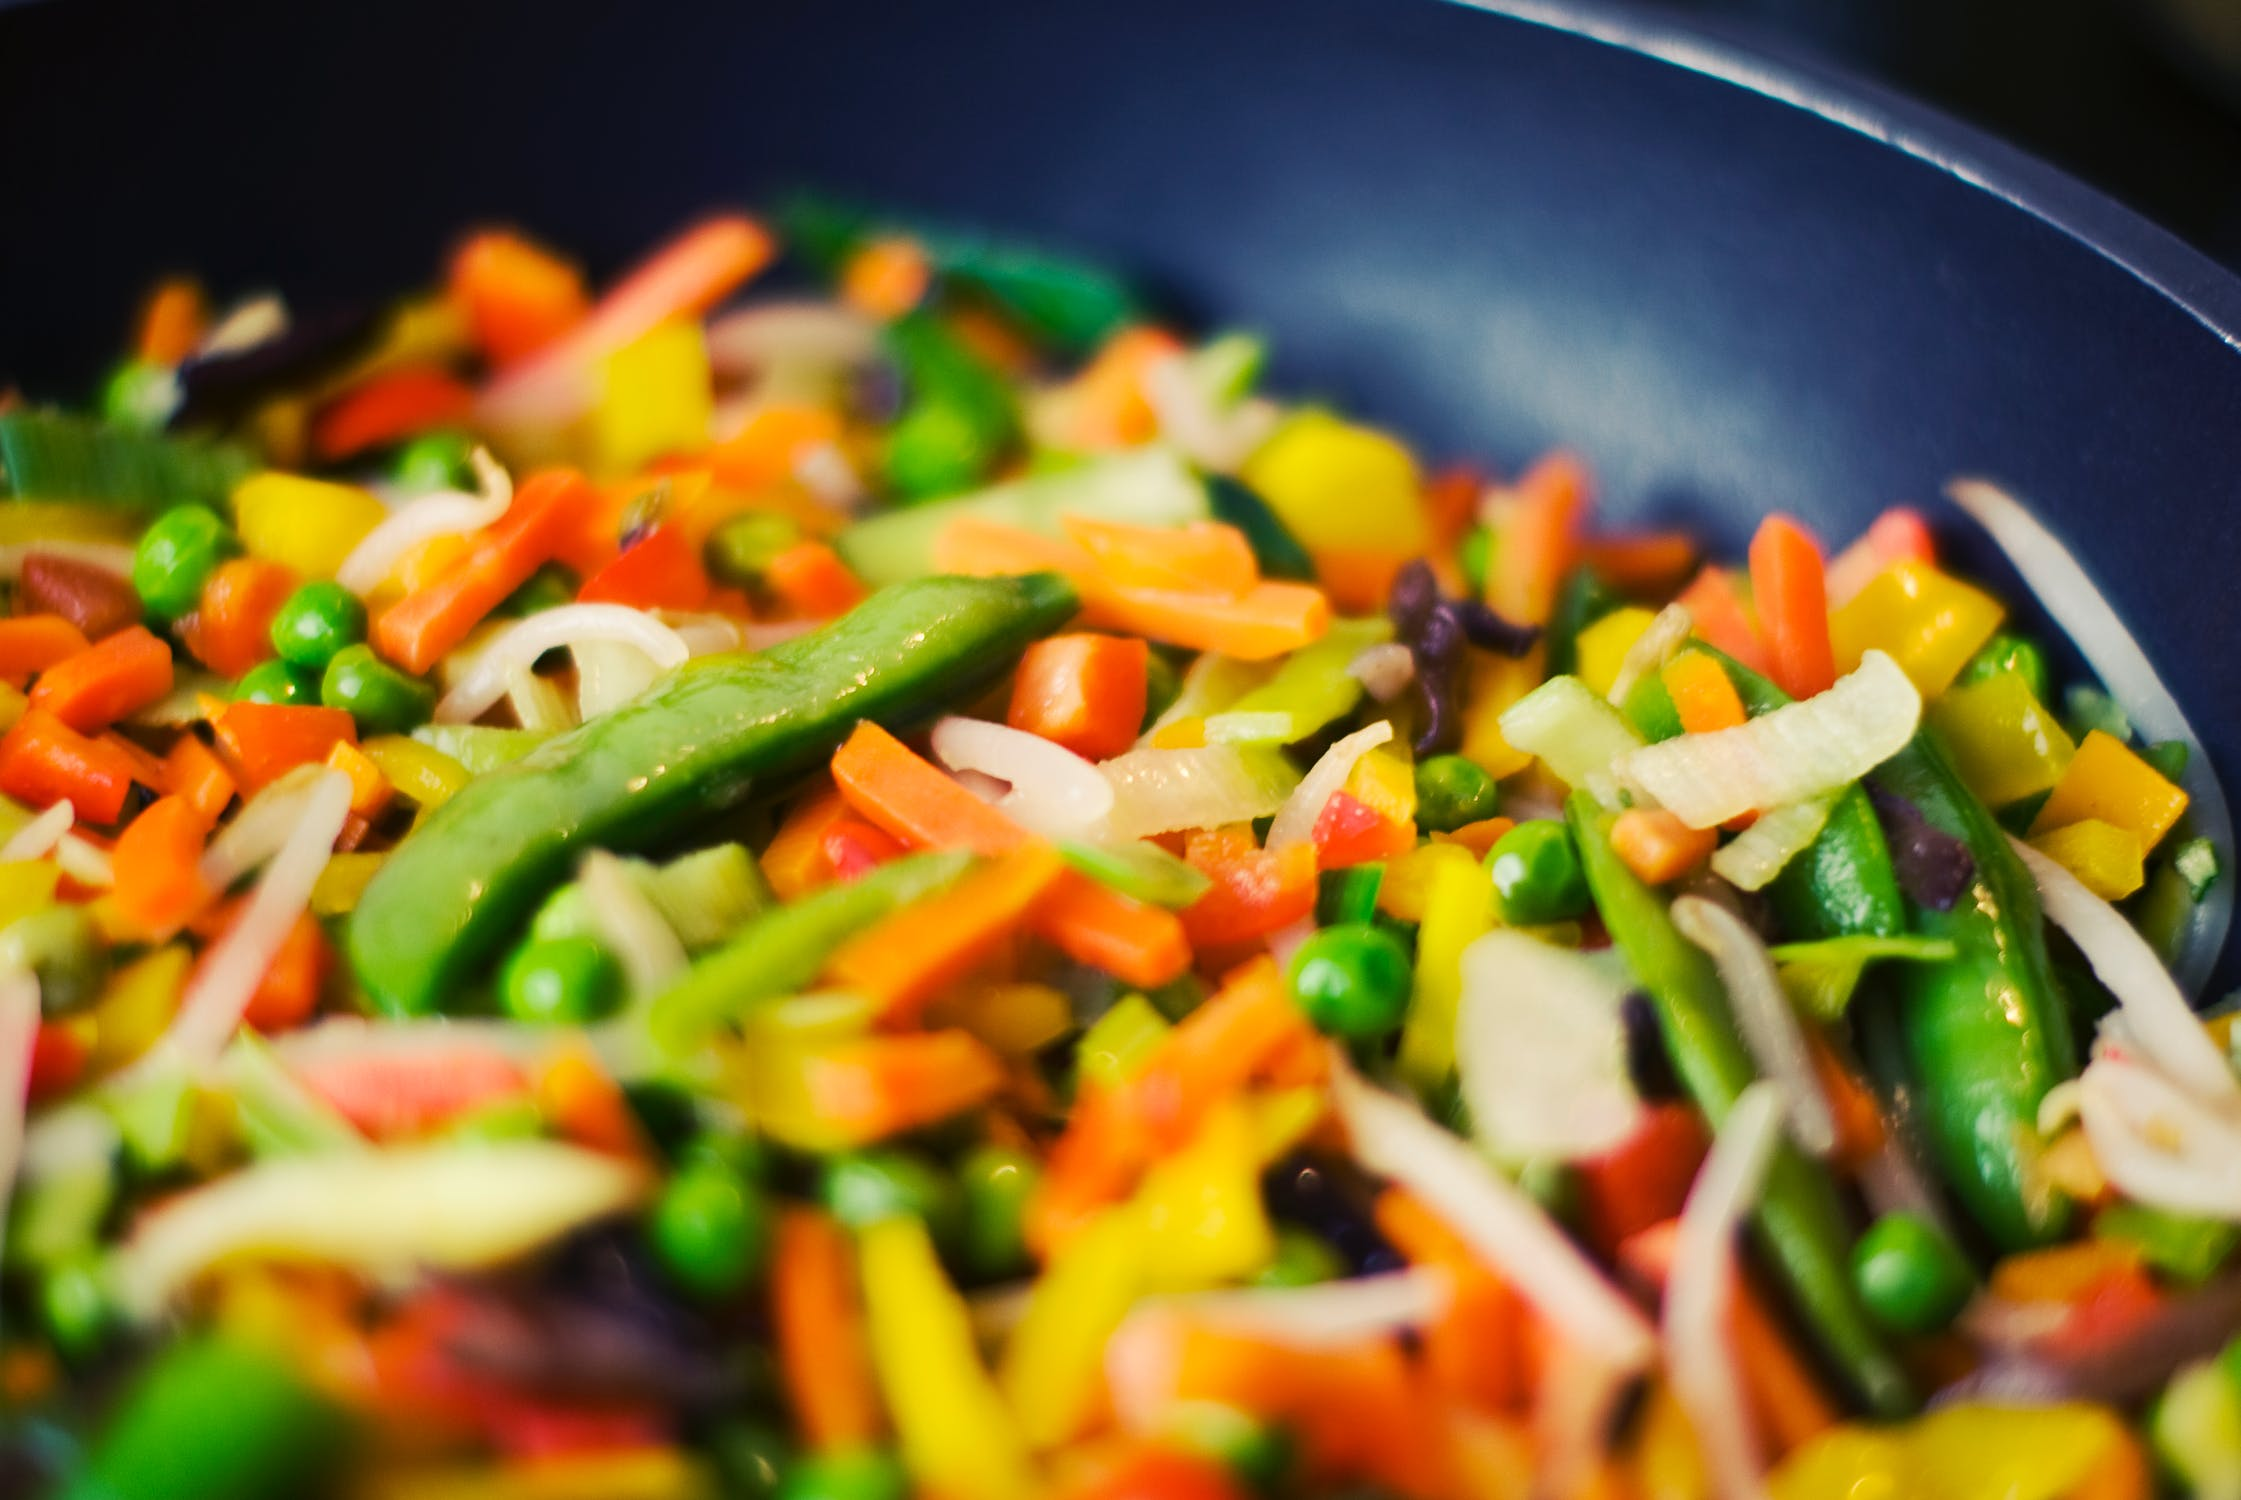 vegetables-frying-pan-greens.jpg